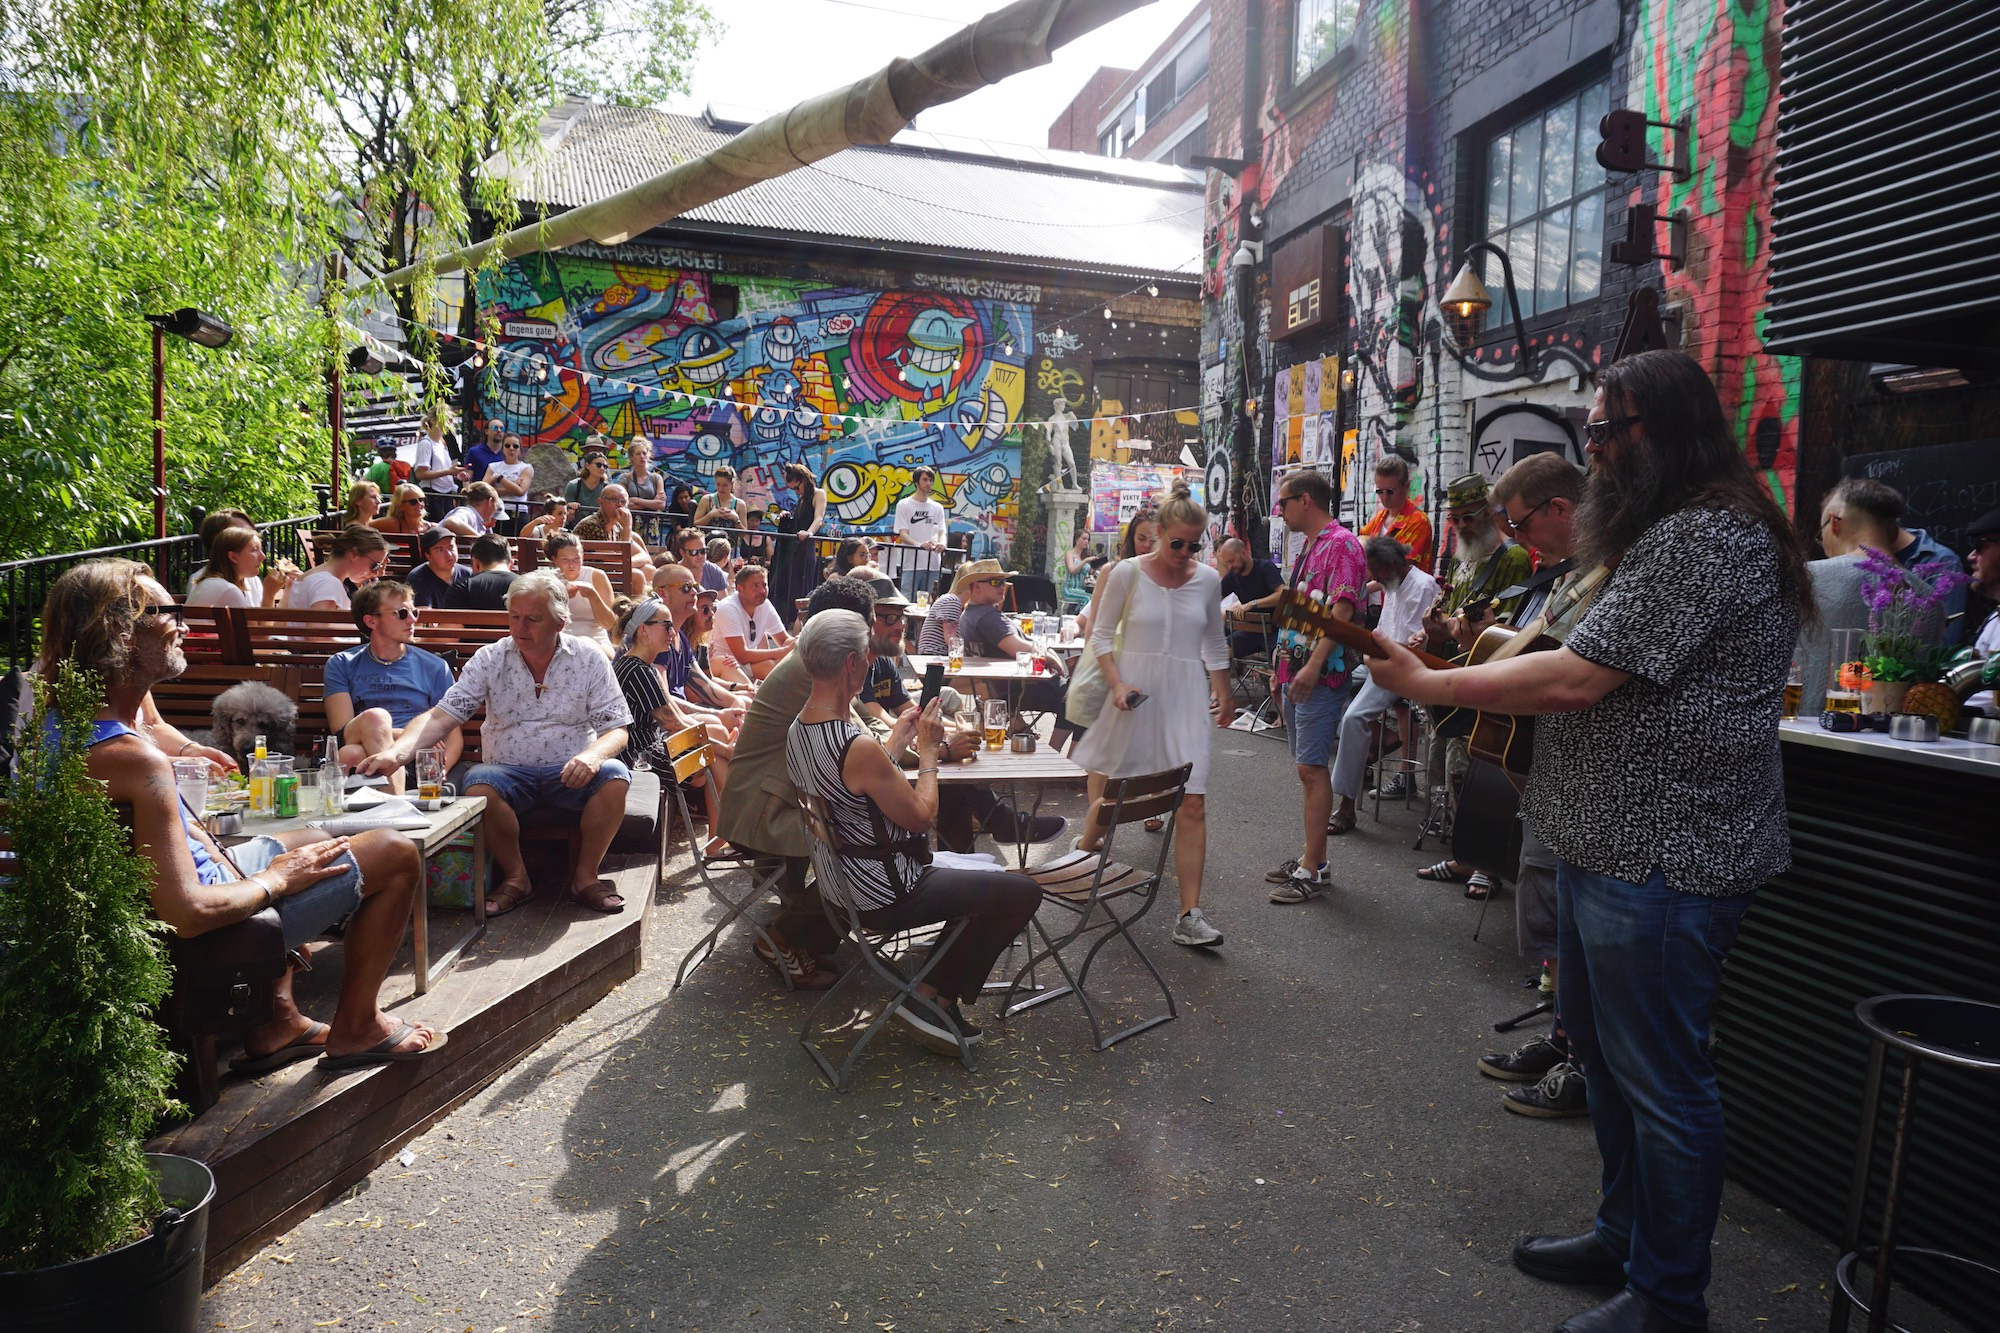 Free music concerts on Sunday afternoons at Blå.